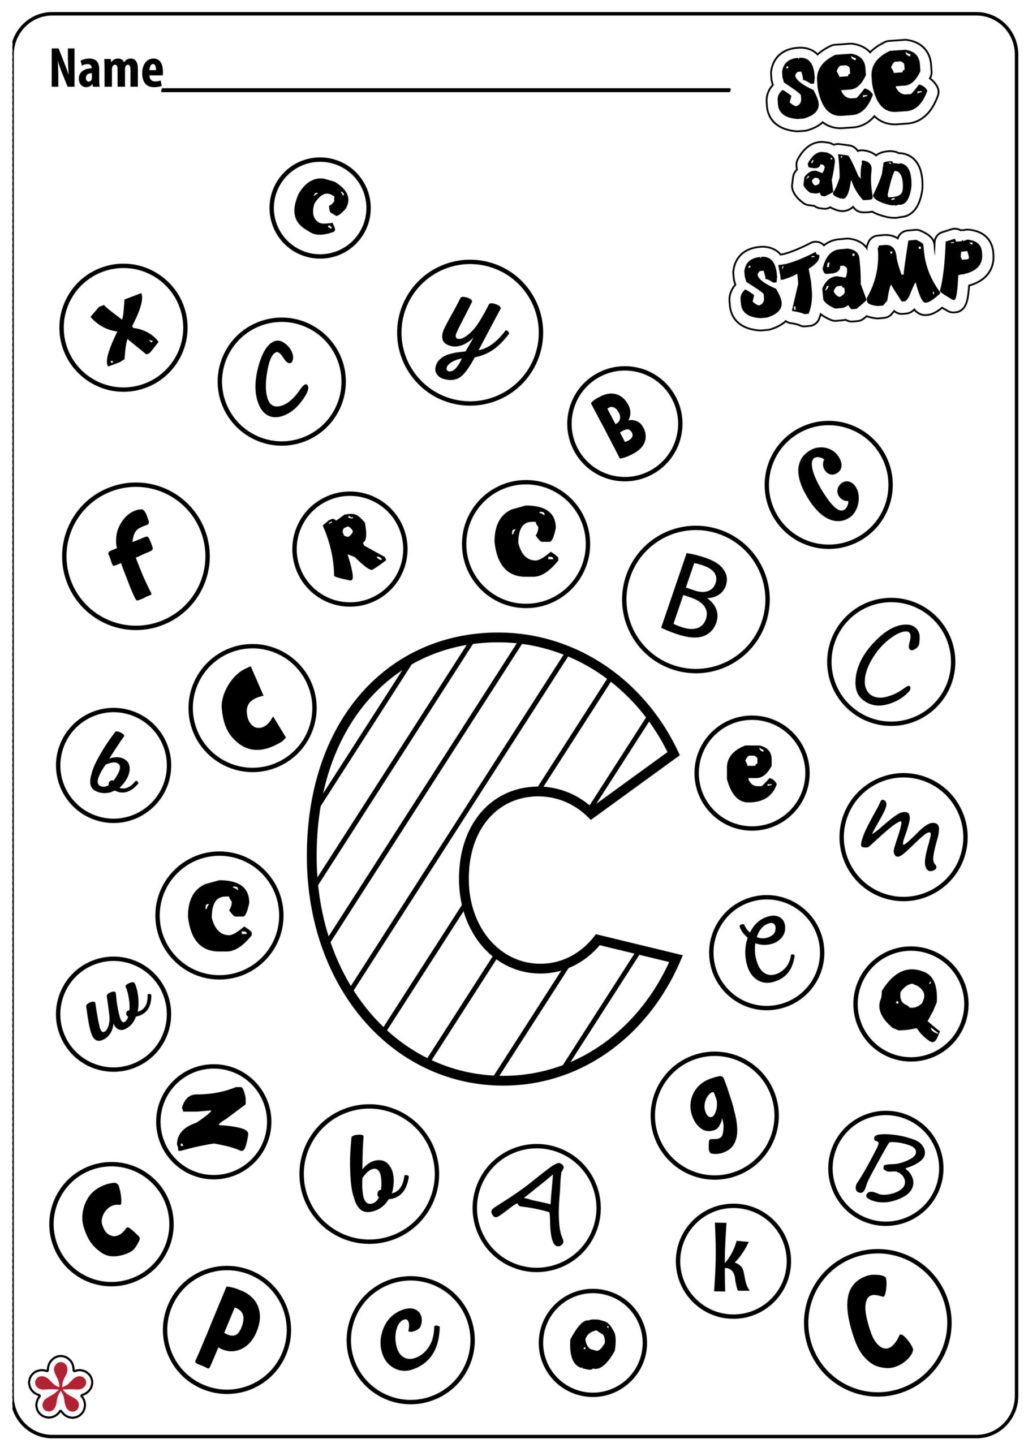 free printable winter coloring positional words kindergarten worksheets pr kg pdf math digit addition and subtraction phrasal verbs exercises with answers fall sheets for toddlers timed scaled 1024x1448